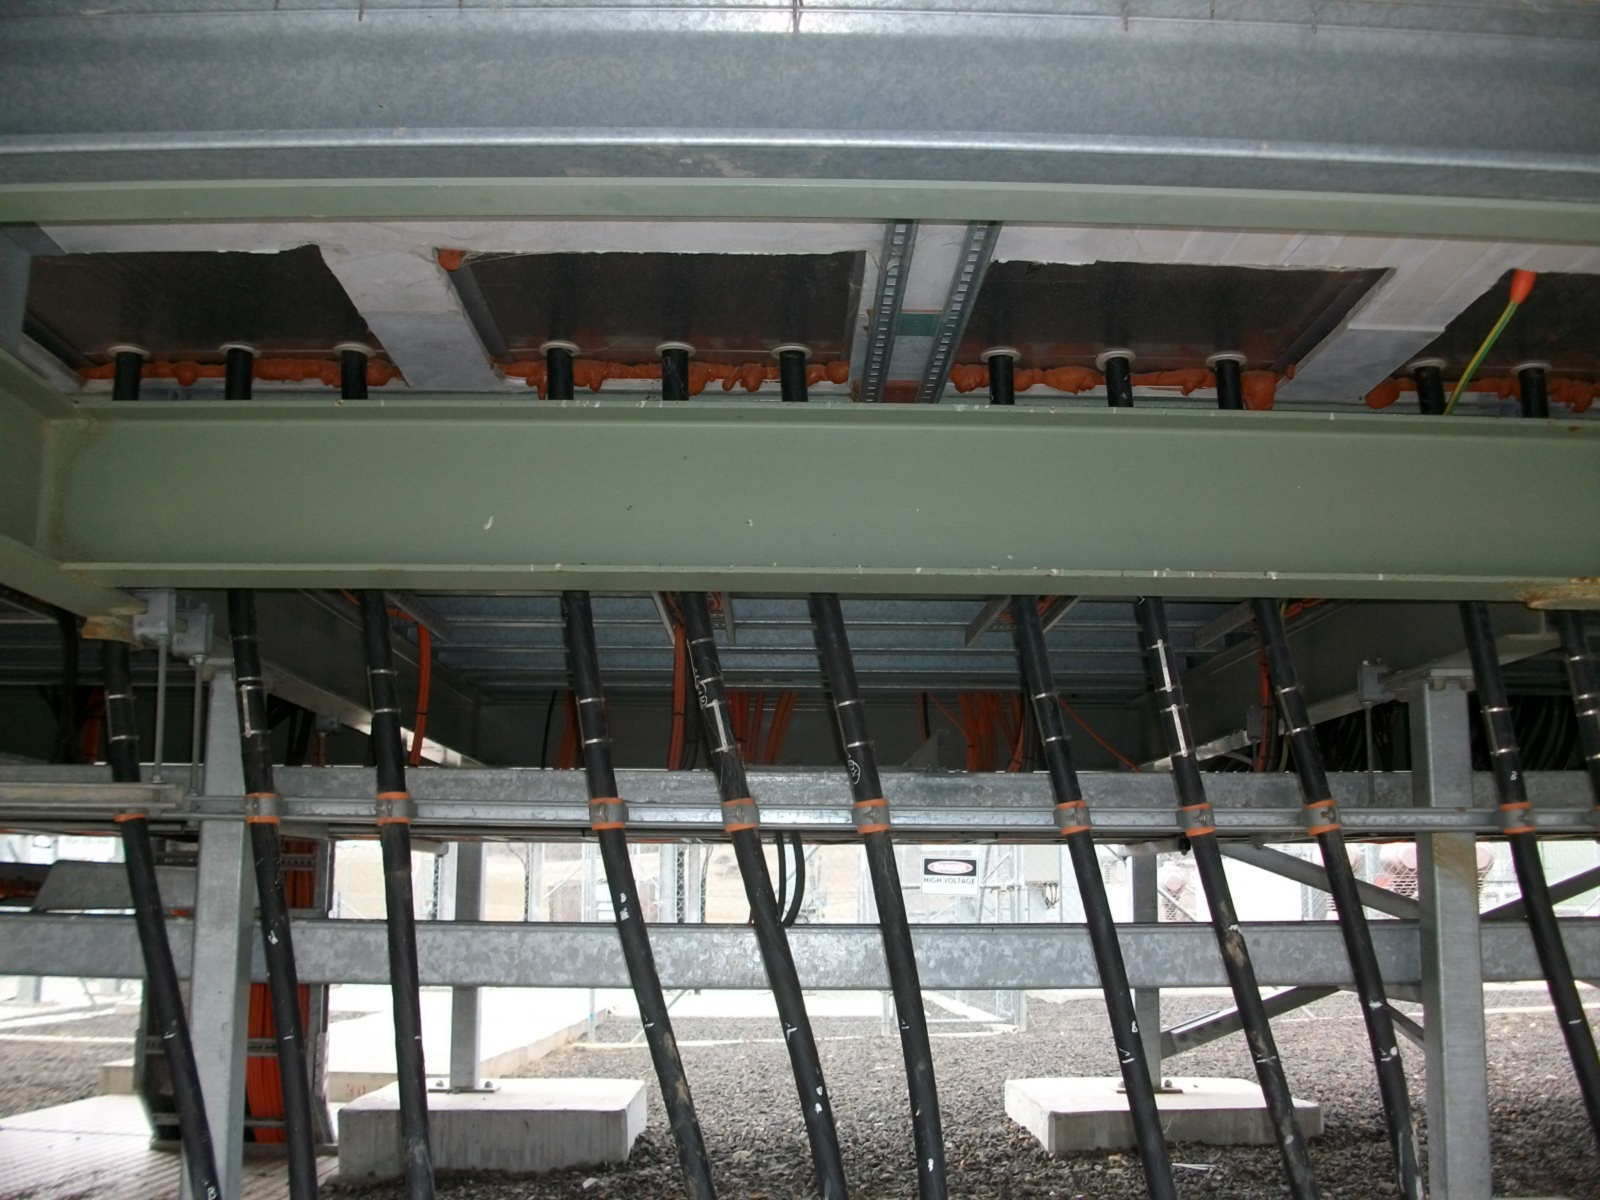 33kV Cables Entering Switchboard